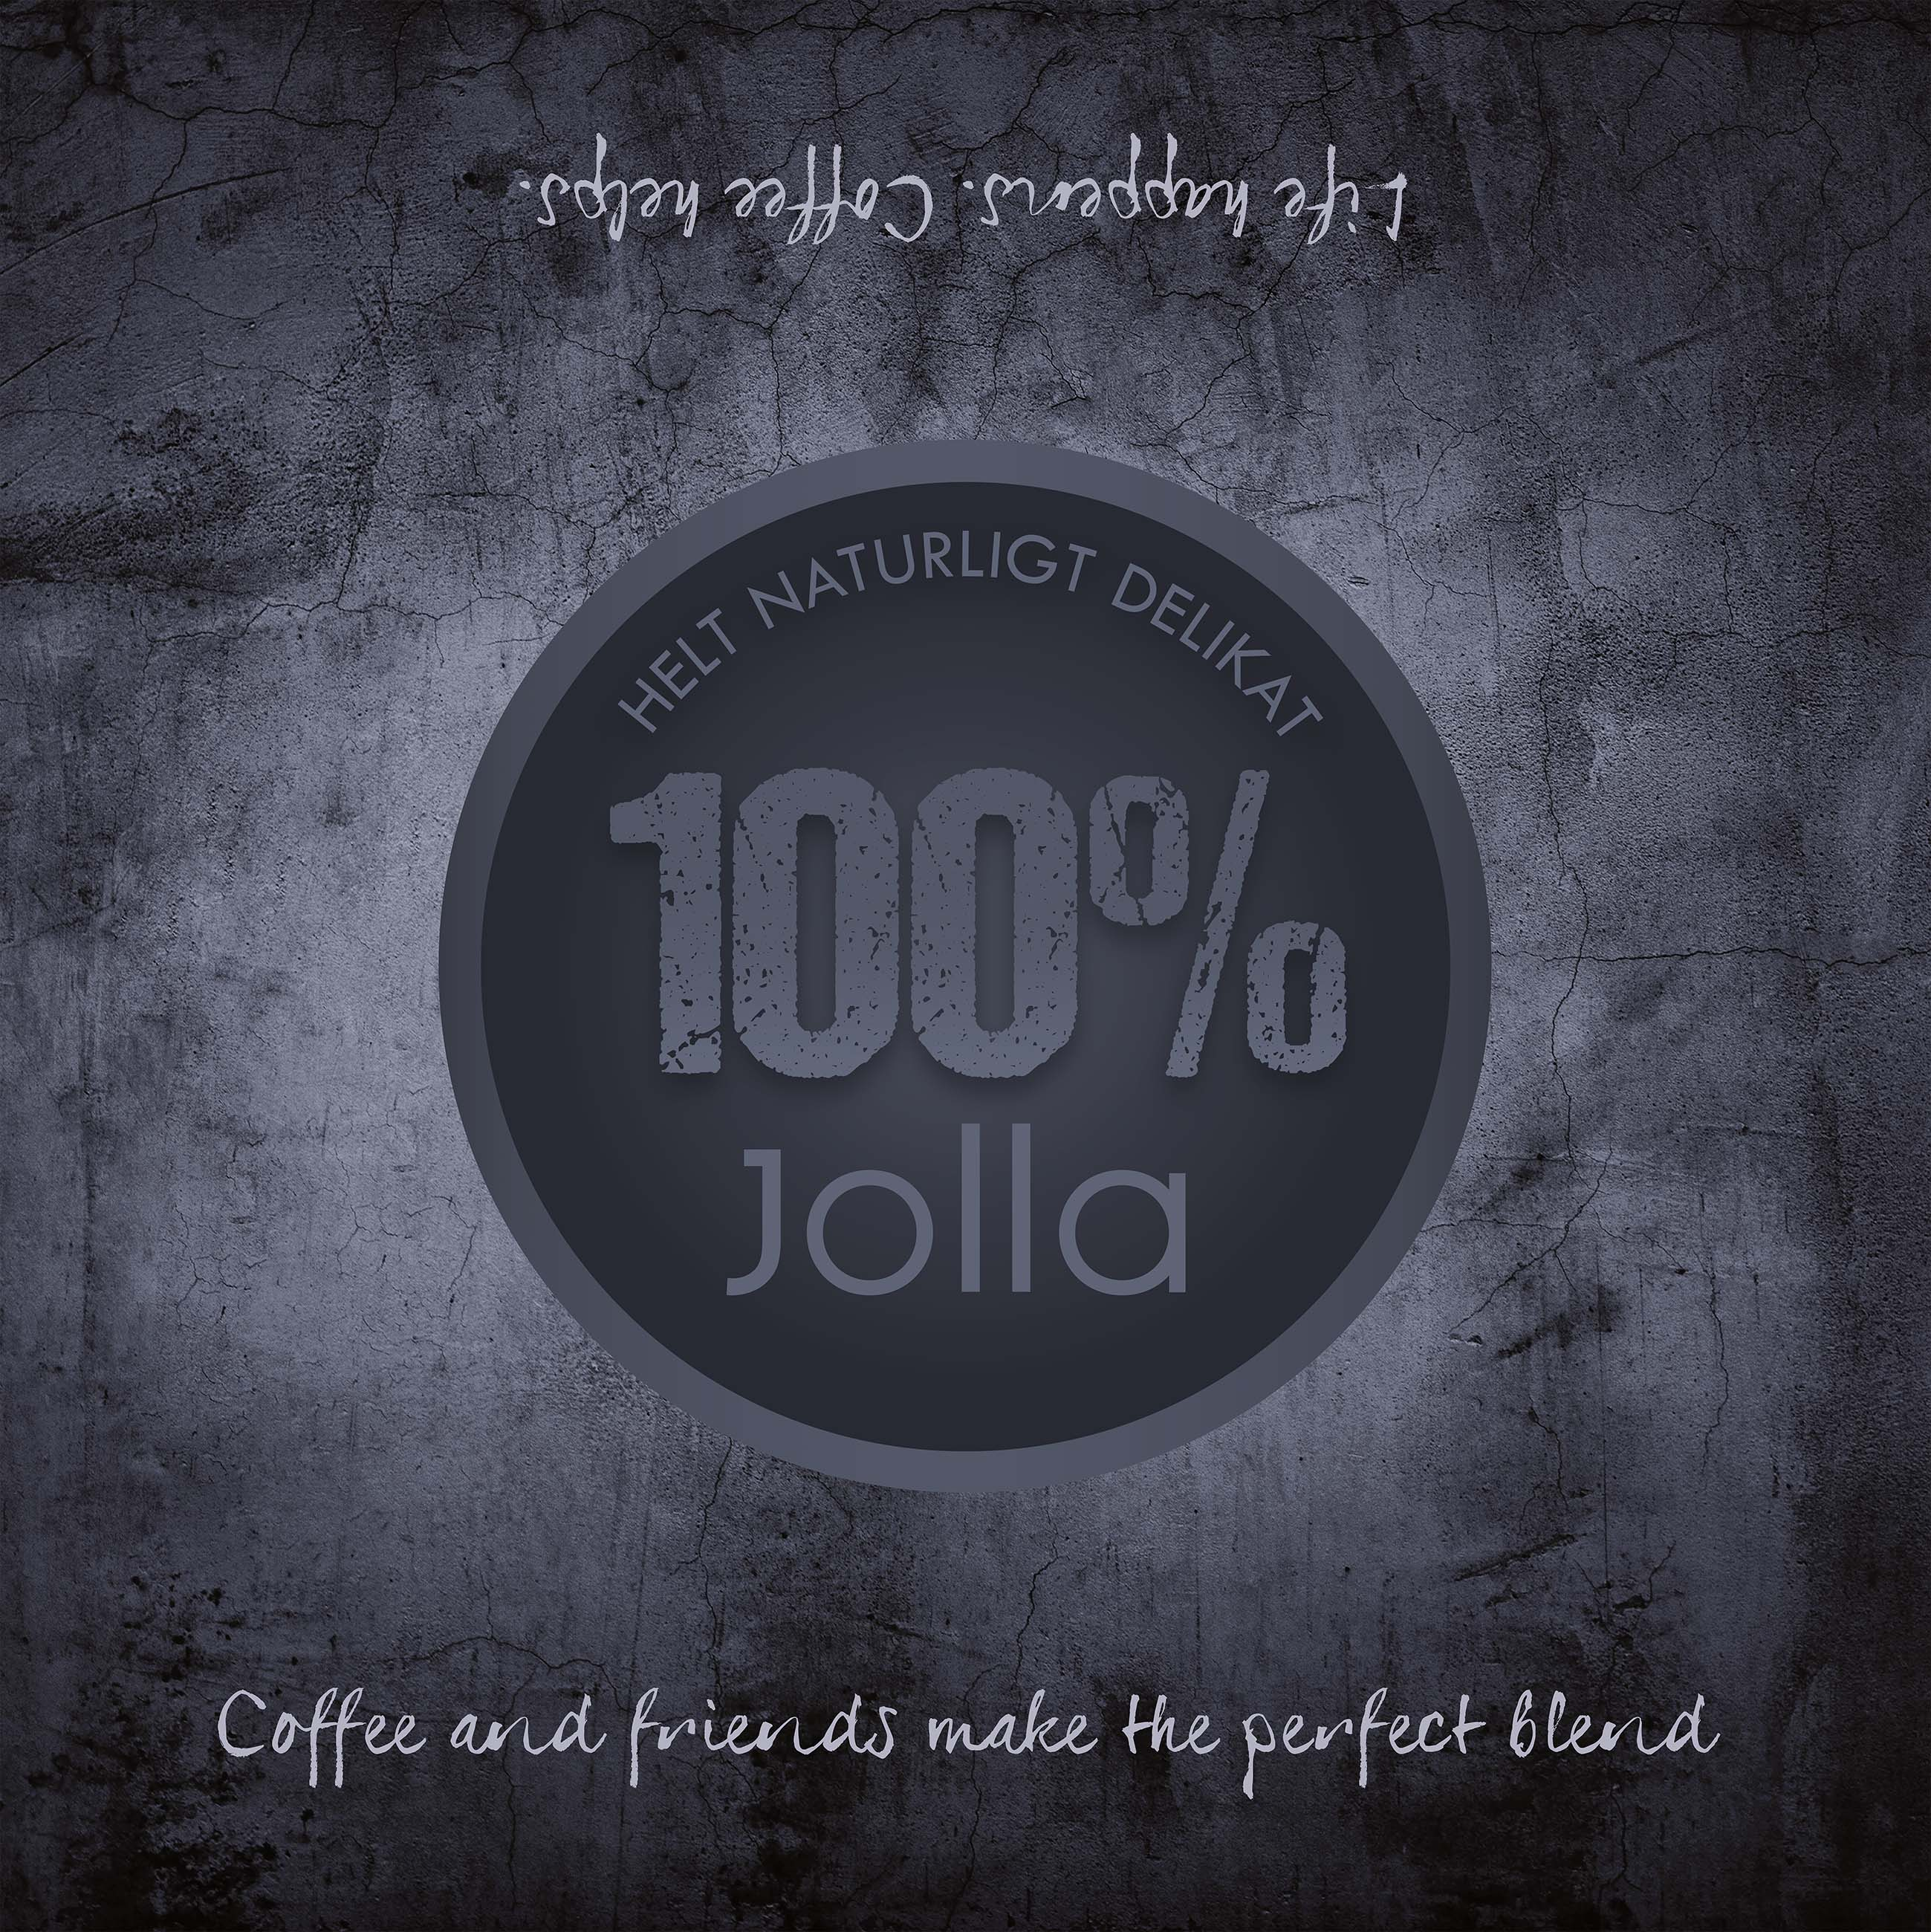 jolla_cafebord_55x55_11_st_cf27_160518.indd